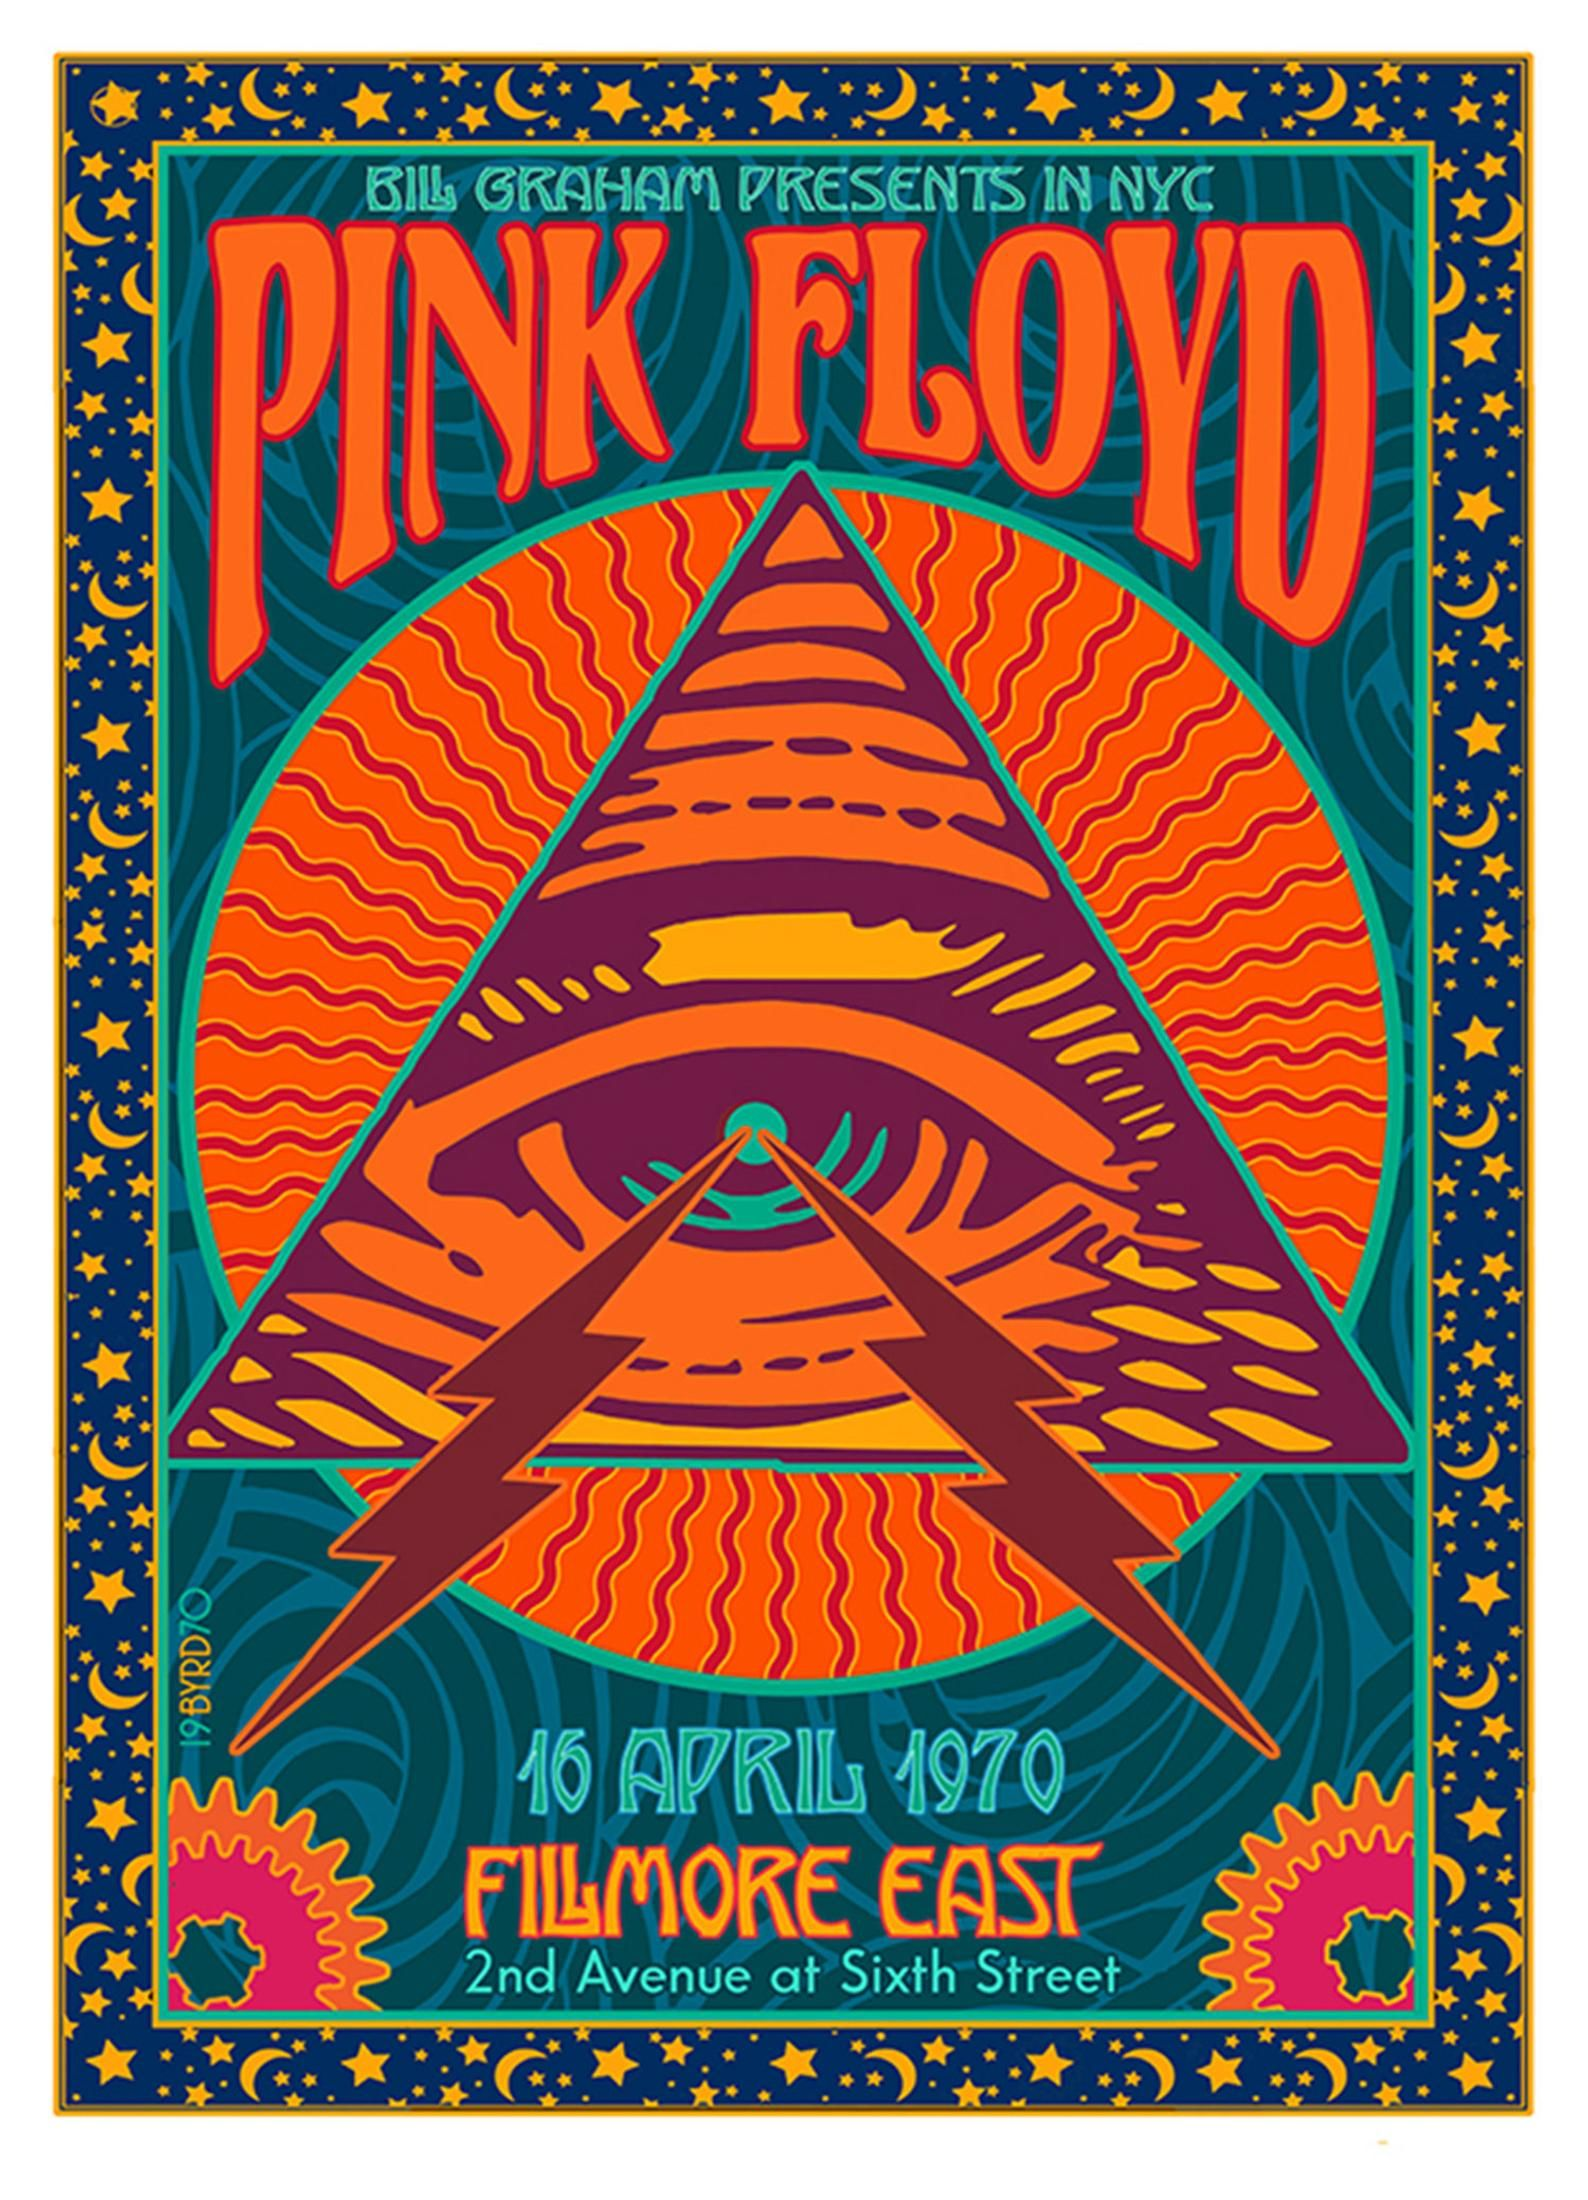 PINK FLOYD at the Fillmore East 1989